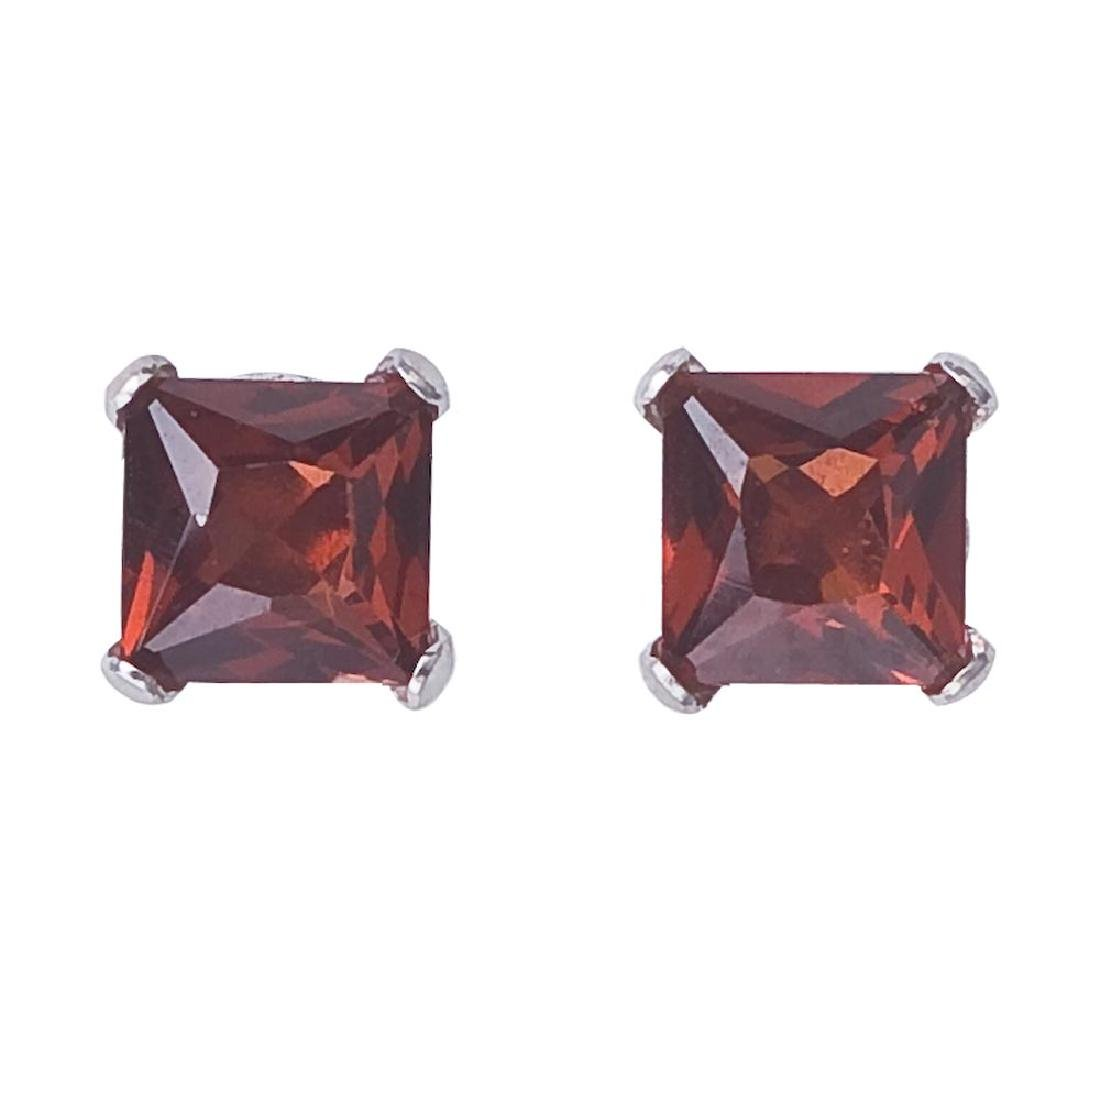 Certified 14k White Gold Square Garnet Stud Earrings